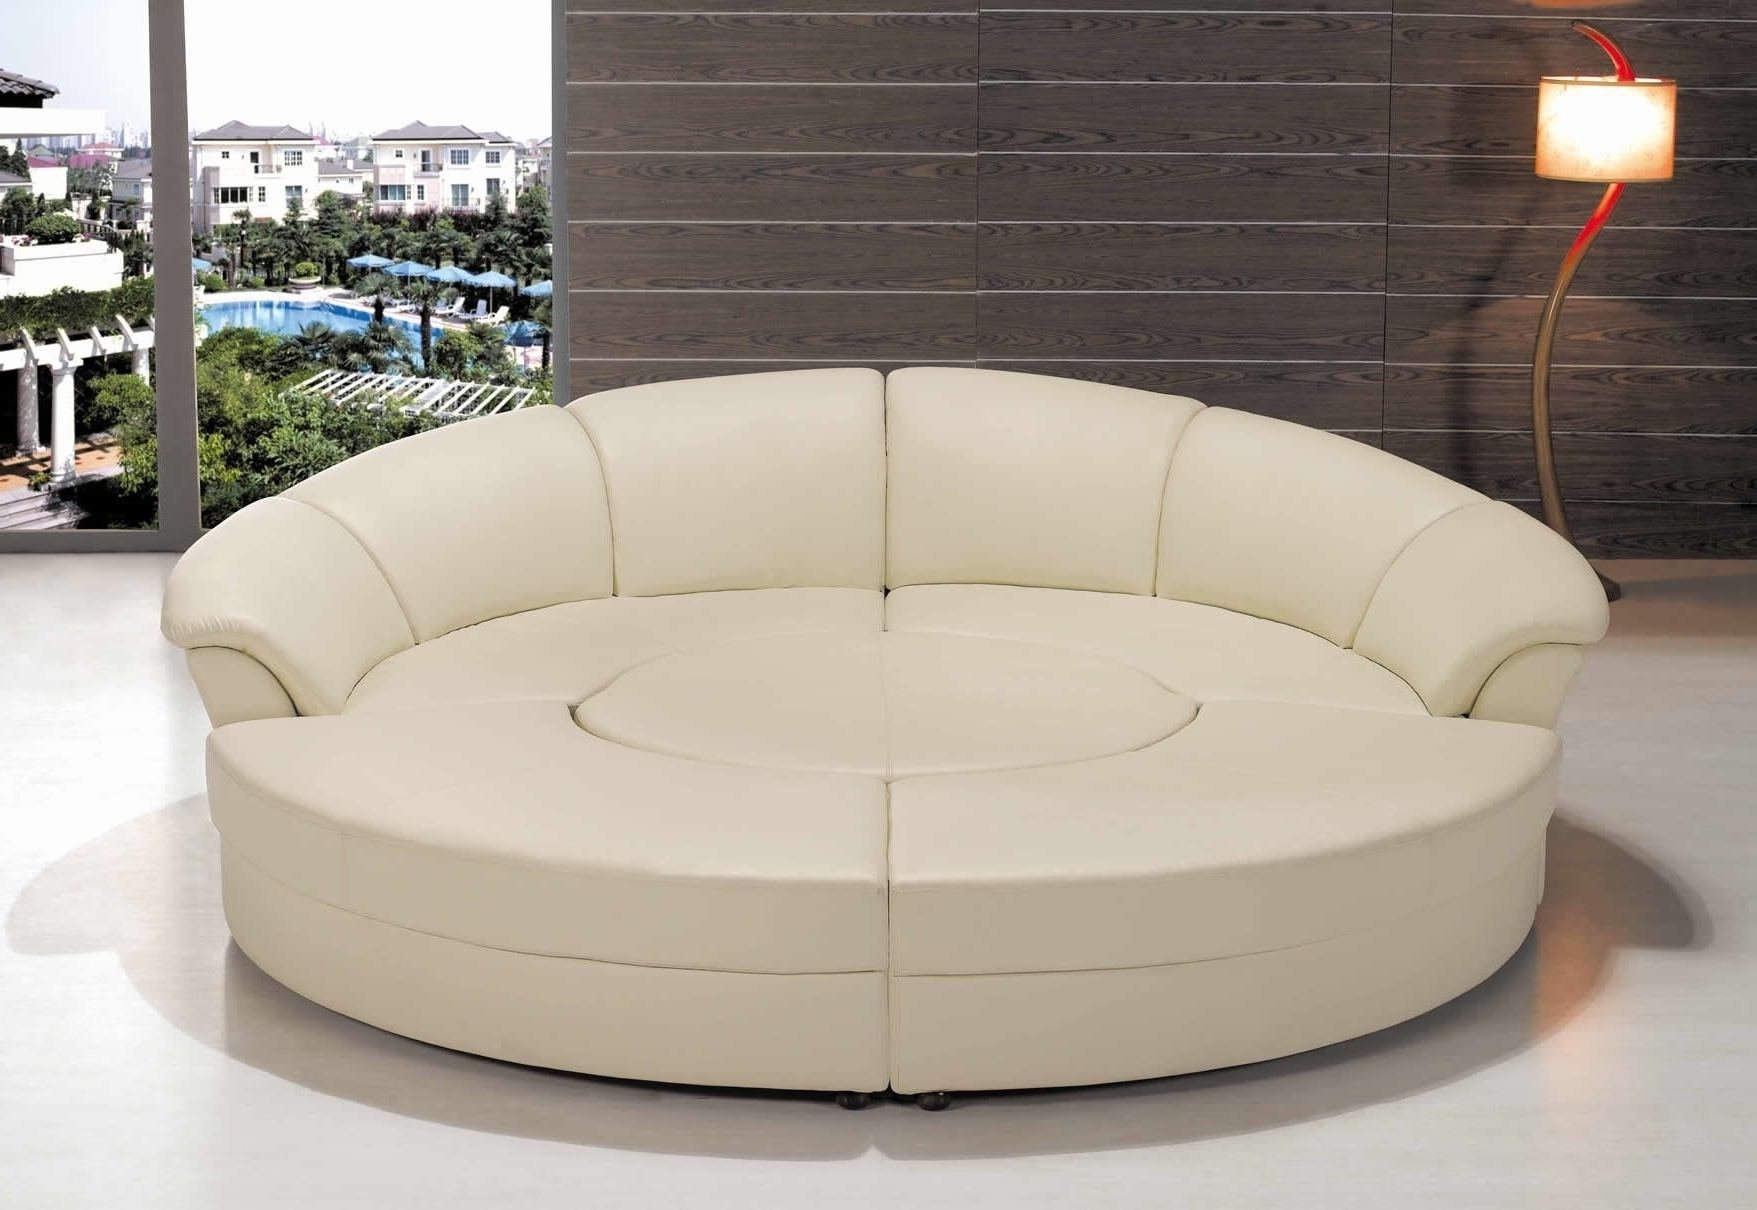 Semi Circular Sectional Sofa 2 – Semi Circular Sofa Uk, Sofa Throughout Well Known Round Sofas (View 13 of 15)